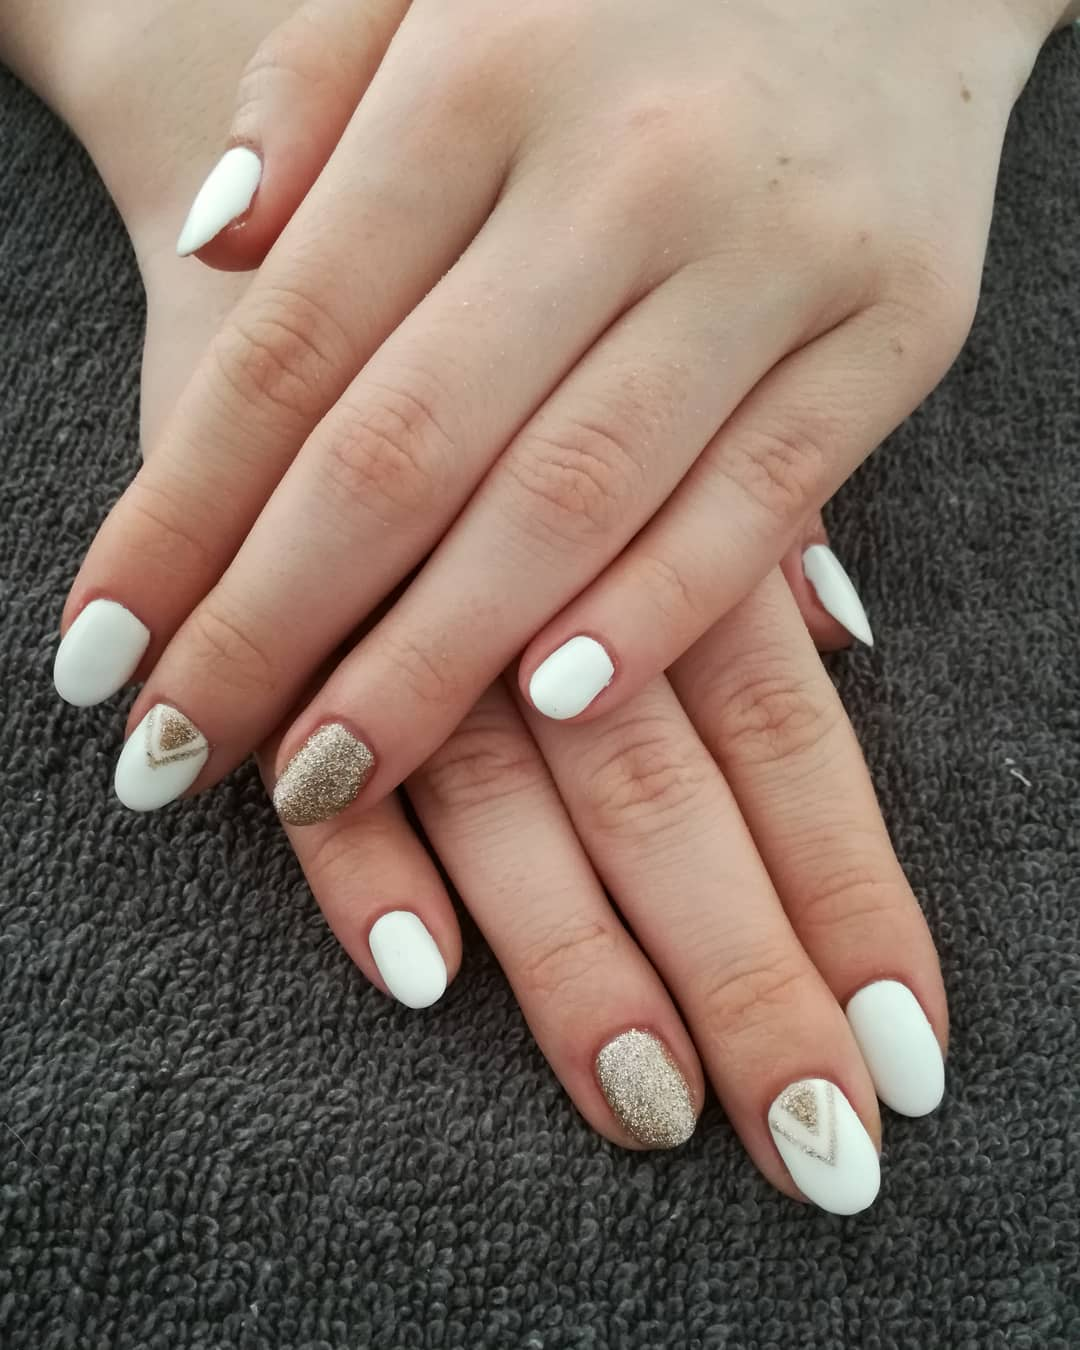 Fashionable White Nails with Golden Nail Art